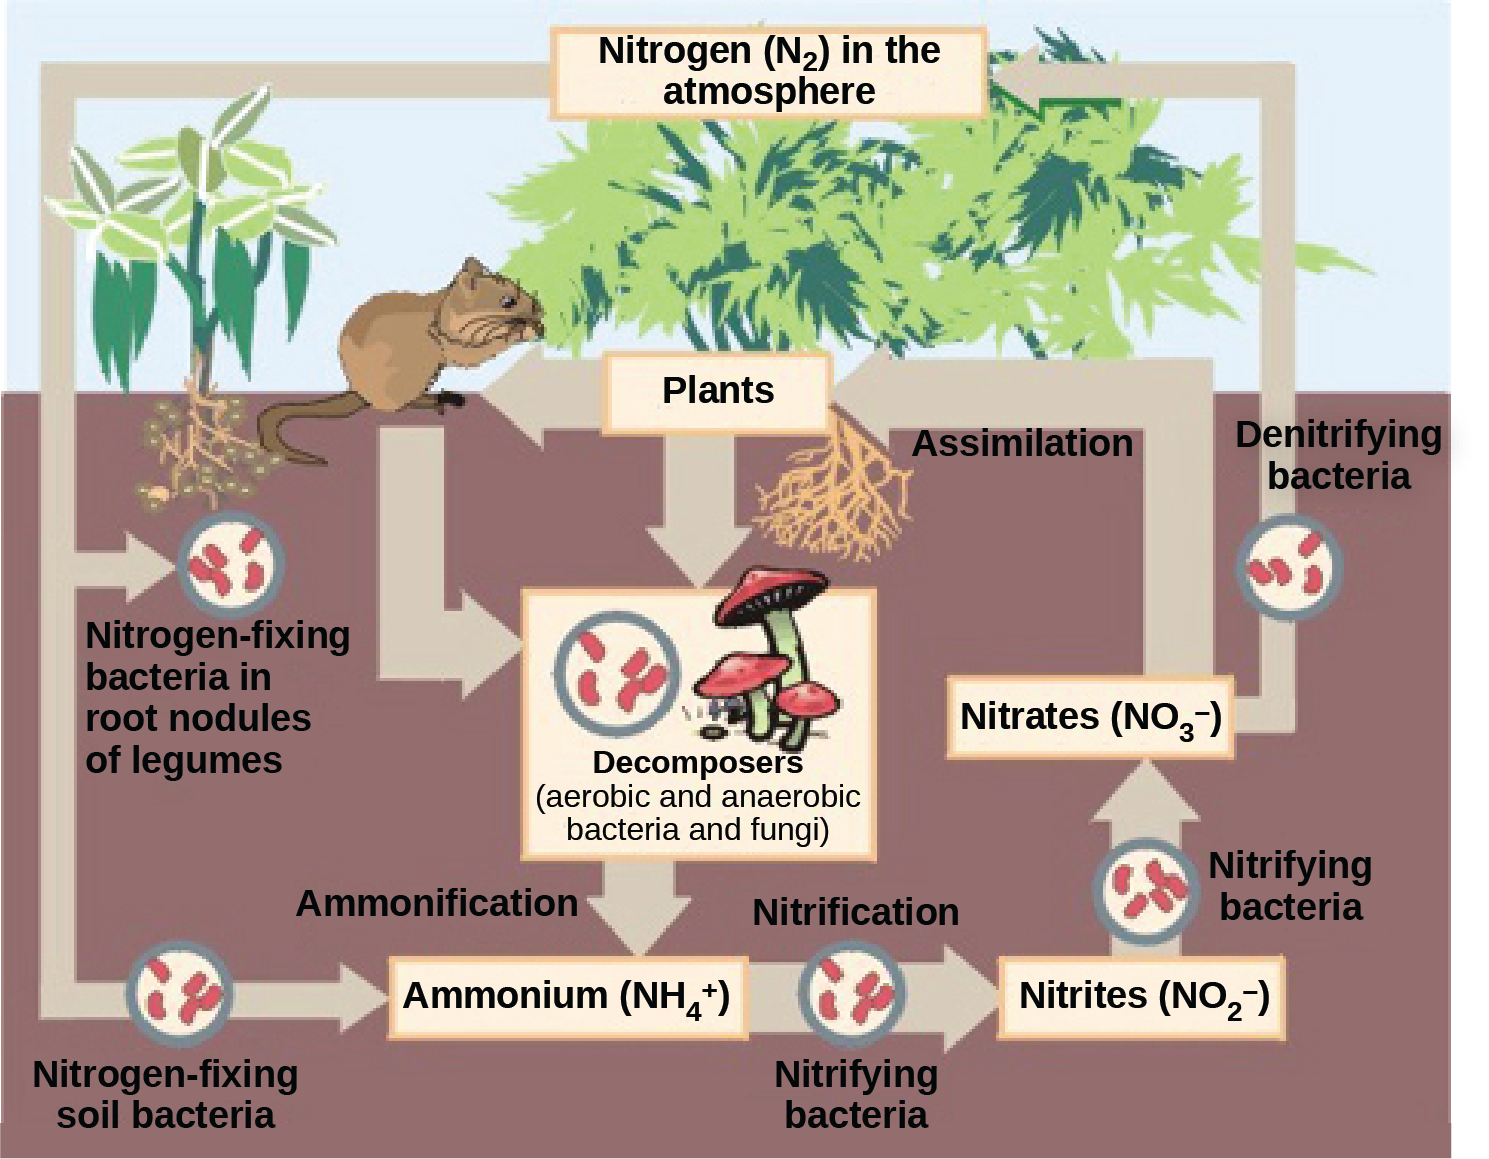 This illustration shows the role of bacteria in the nitrogen cycle. Nitrogen-fixing bacteria in root nodules of legumes convert nitrogen gas, or upper case N 2, into organic nitrogen found in plants. Nitrogen-fixing soil bacteria produce ammonium ion, or upper N upper H 4 plus sign. Decomposers, including bacteria and fungi, decompose organic matter, also releasing upper N upper H 4 plus sign. Nitrification is the process by which nitrifying bacteria produce nitrites, shown as upper N upper O 2 negative, and nitrates, shown as upper N upper O 3 negative. Nitrates are assimilated by plants, then animals, then decomposers. Denitrifying bacteria convert nitrates to nitrogen gas, completing the cycle.